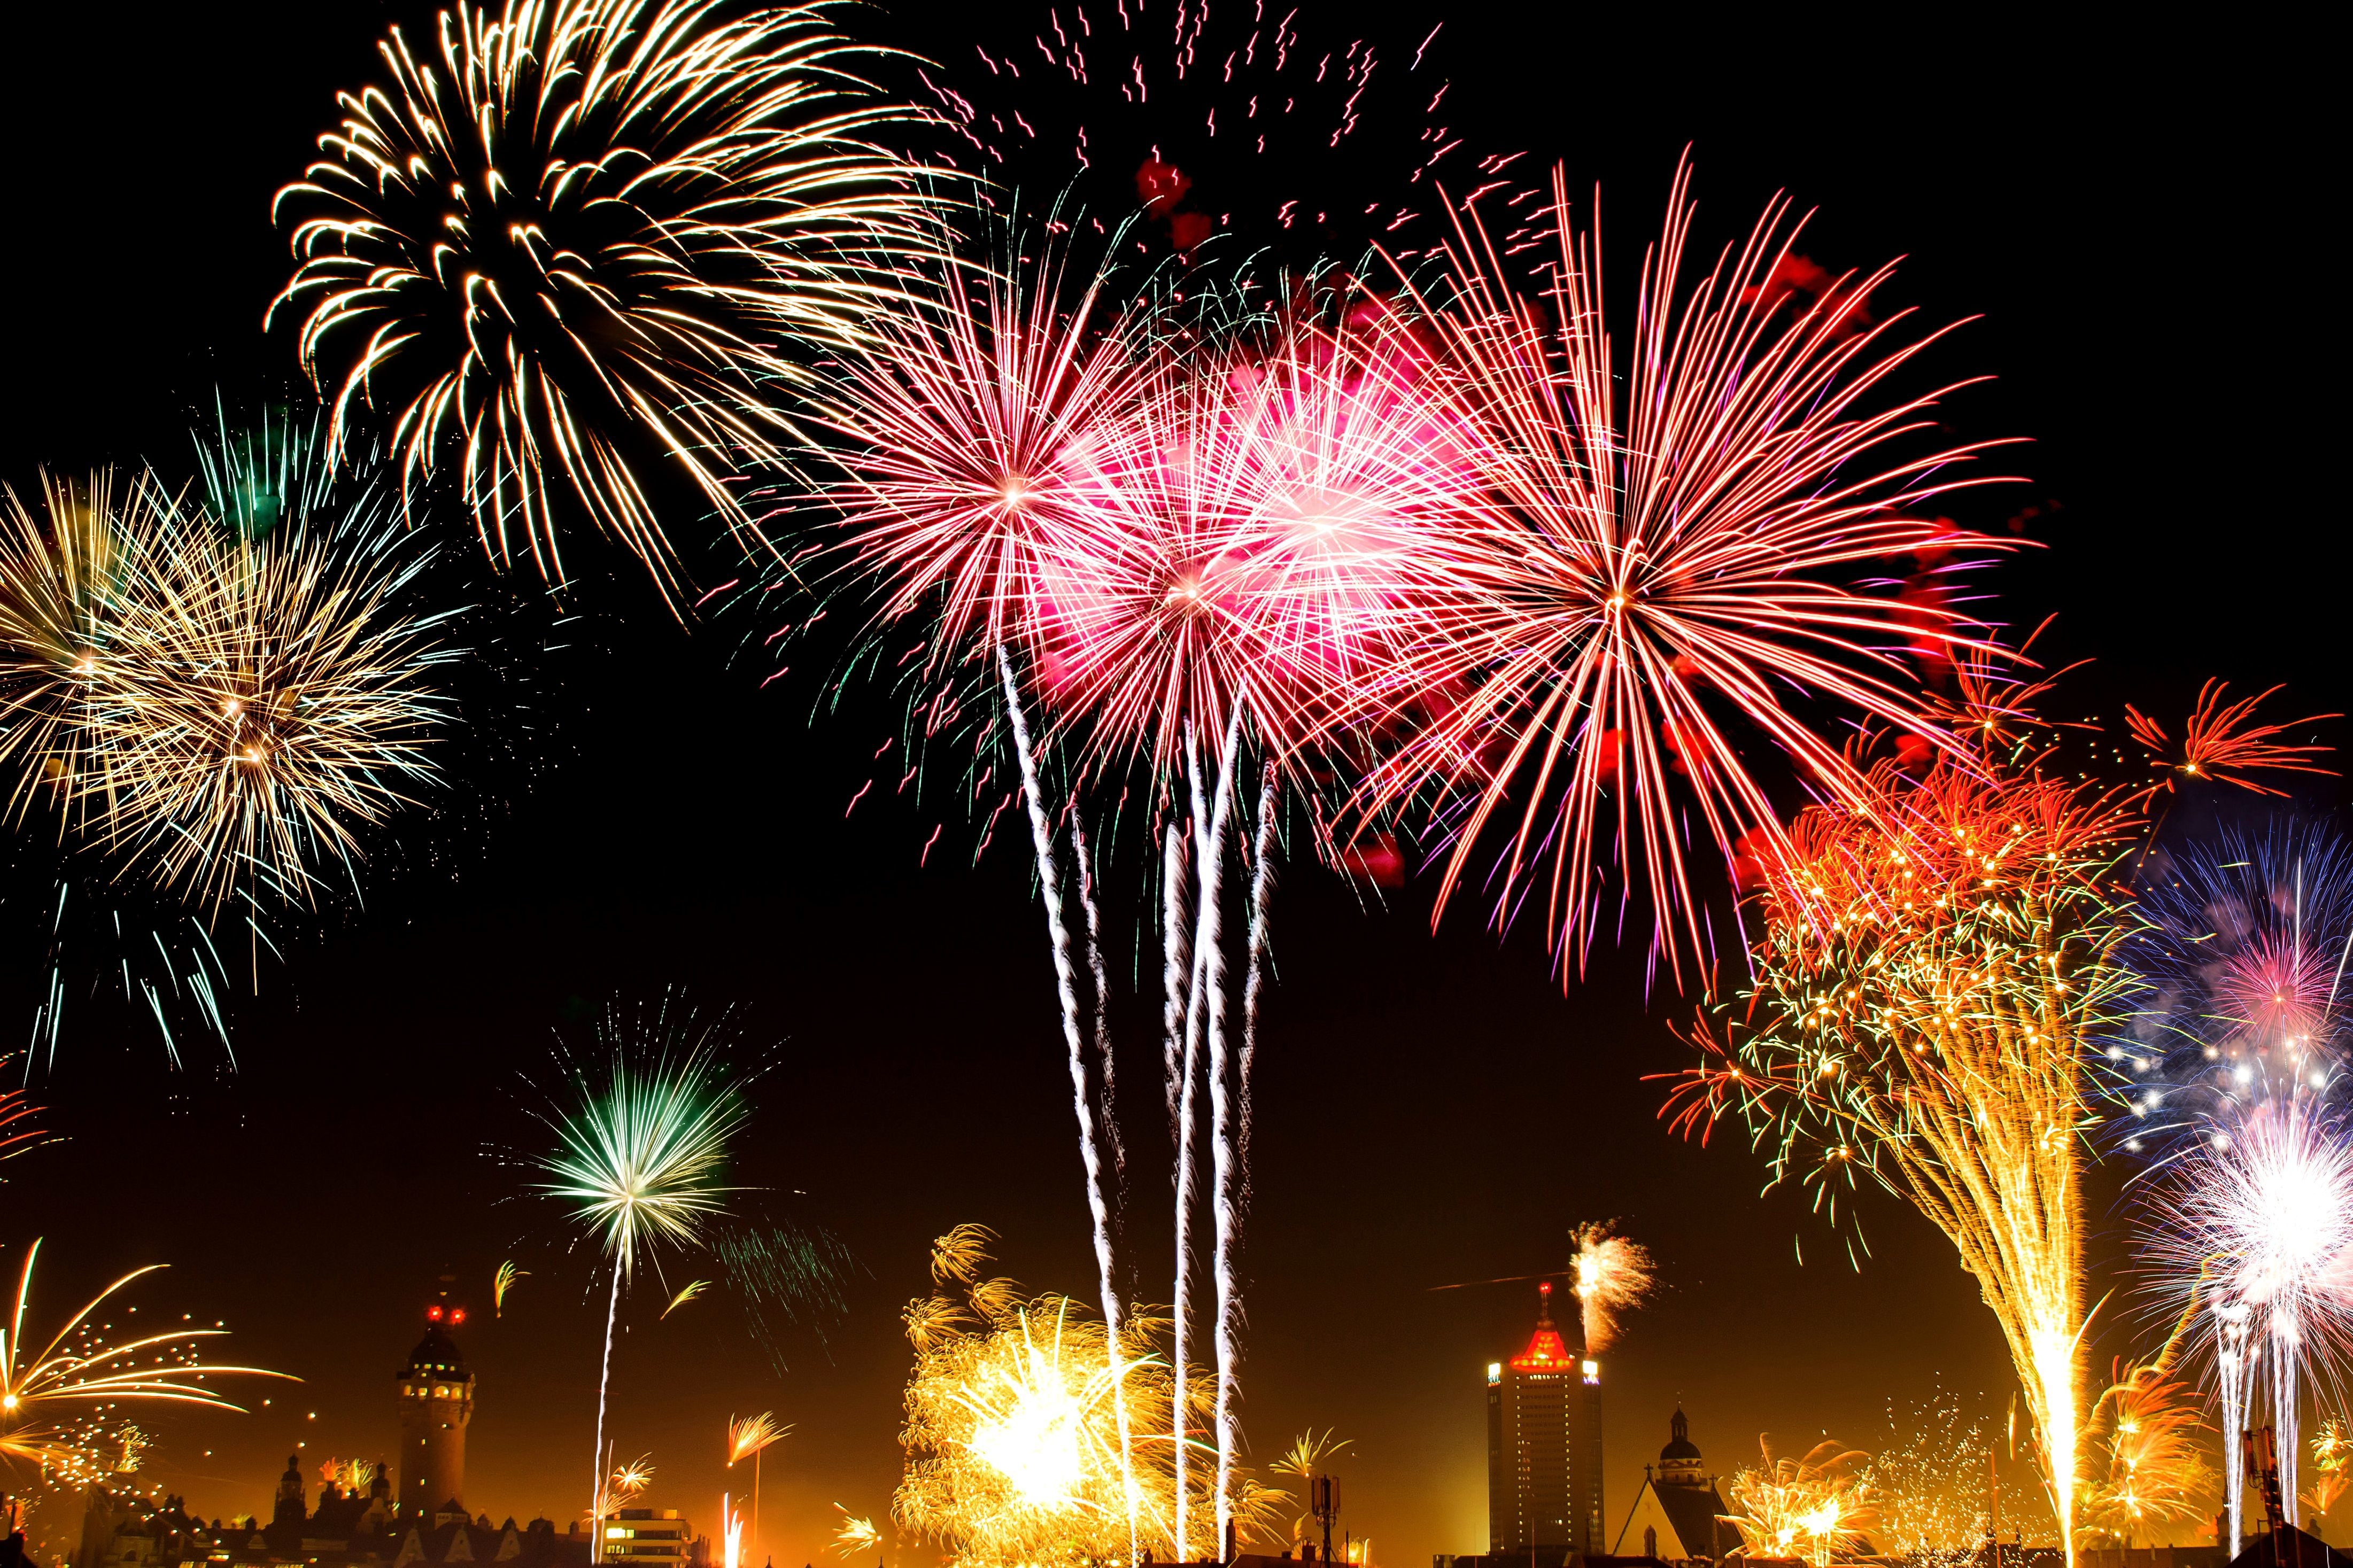 Free picture  colorful fireworks  new year  celebration colorful fireworks  new year  celebration